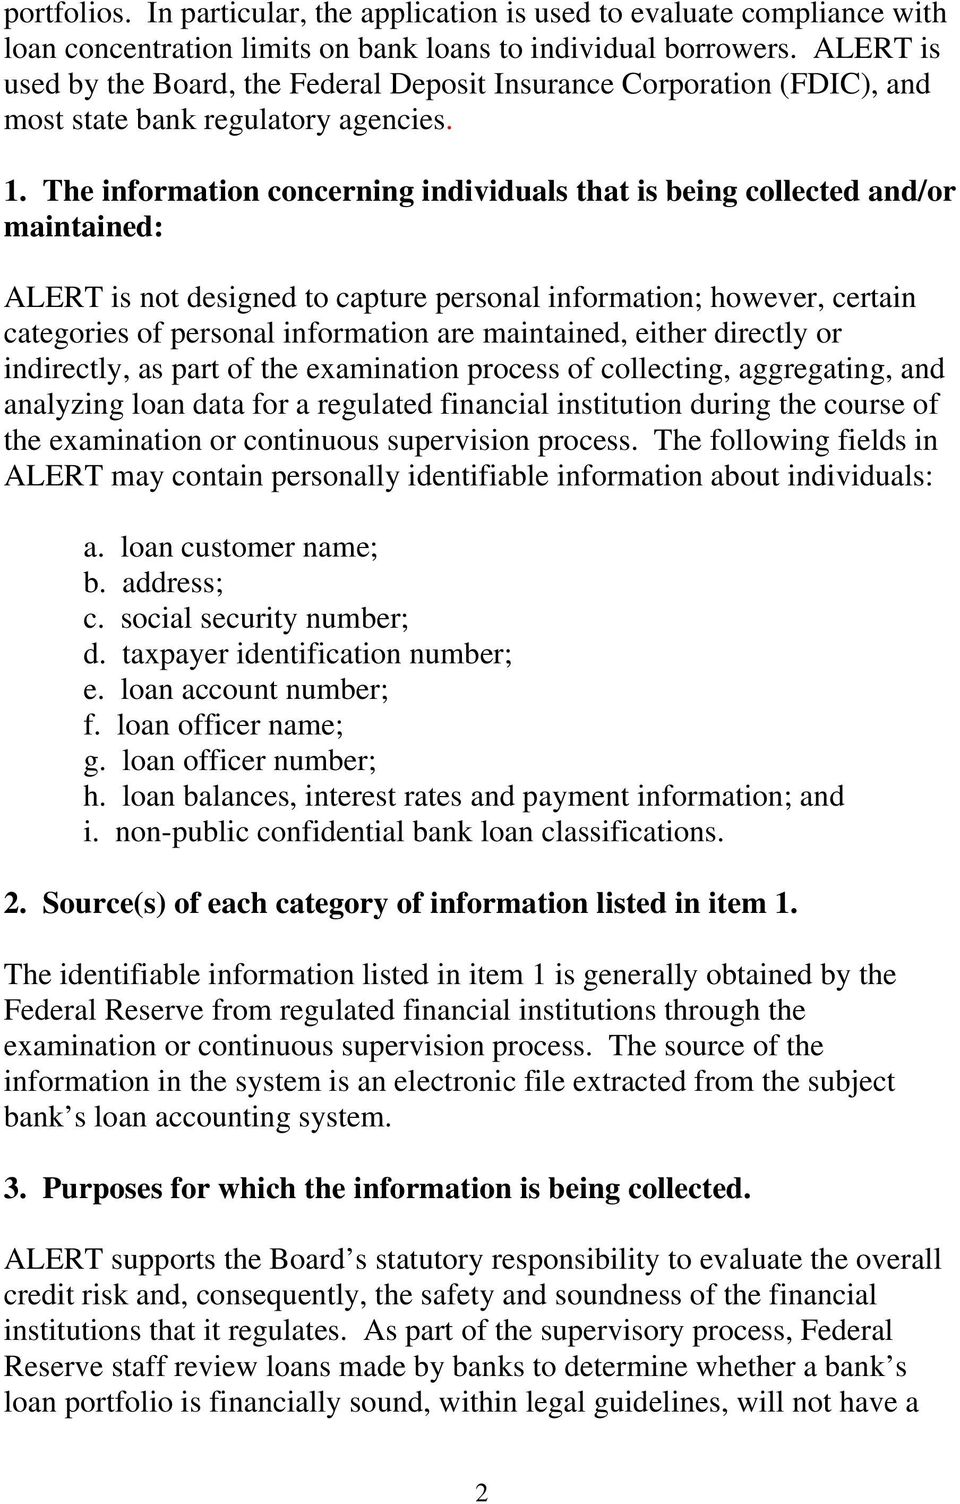 The information concerning individuals that is being collected and/or maintained: ALERT is not designed to capture personal information; however, certain categories of personal information are